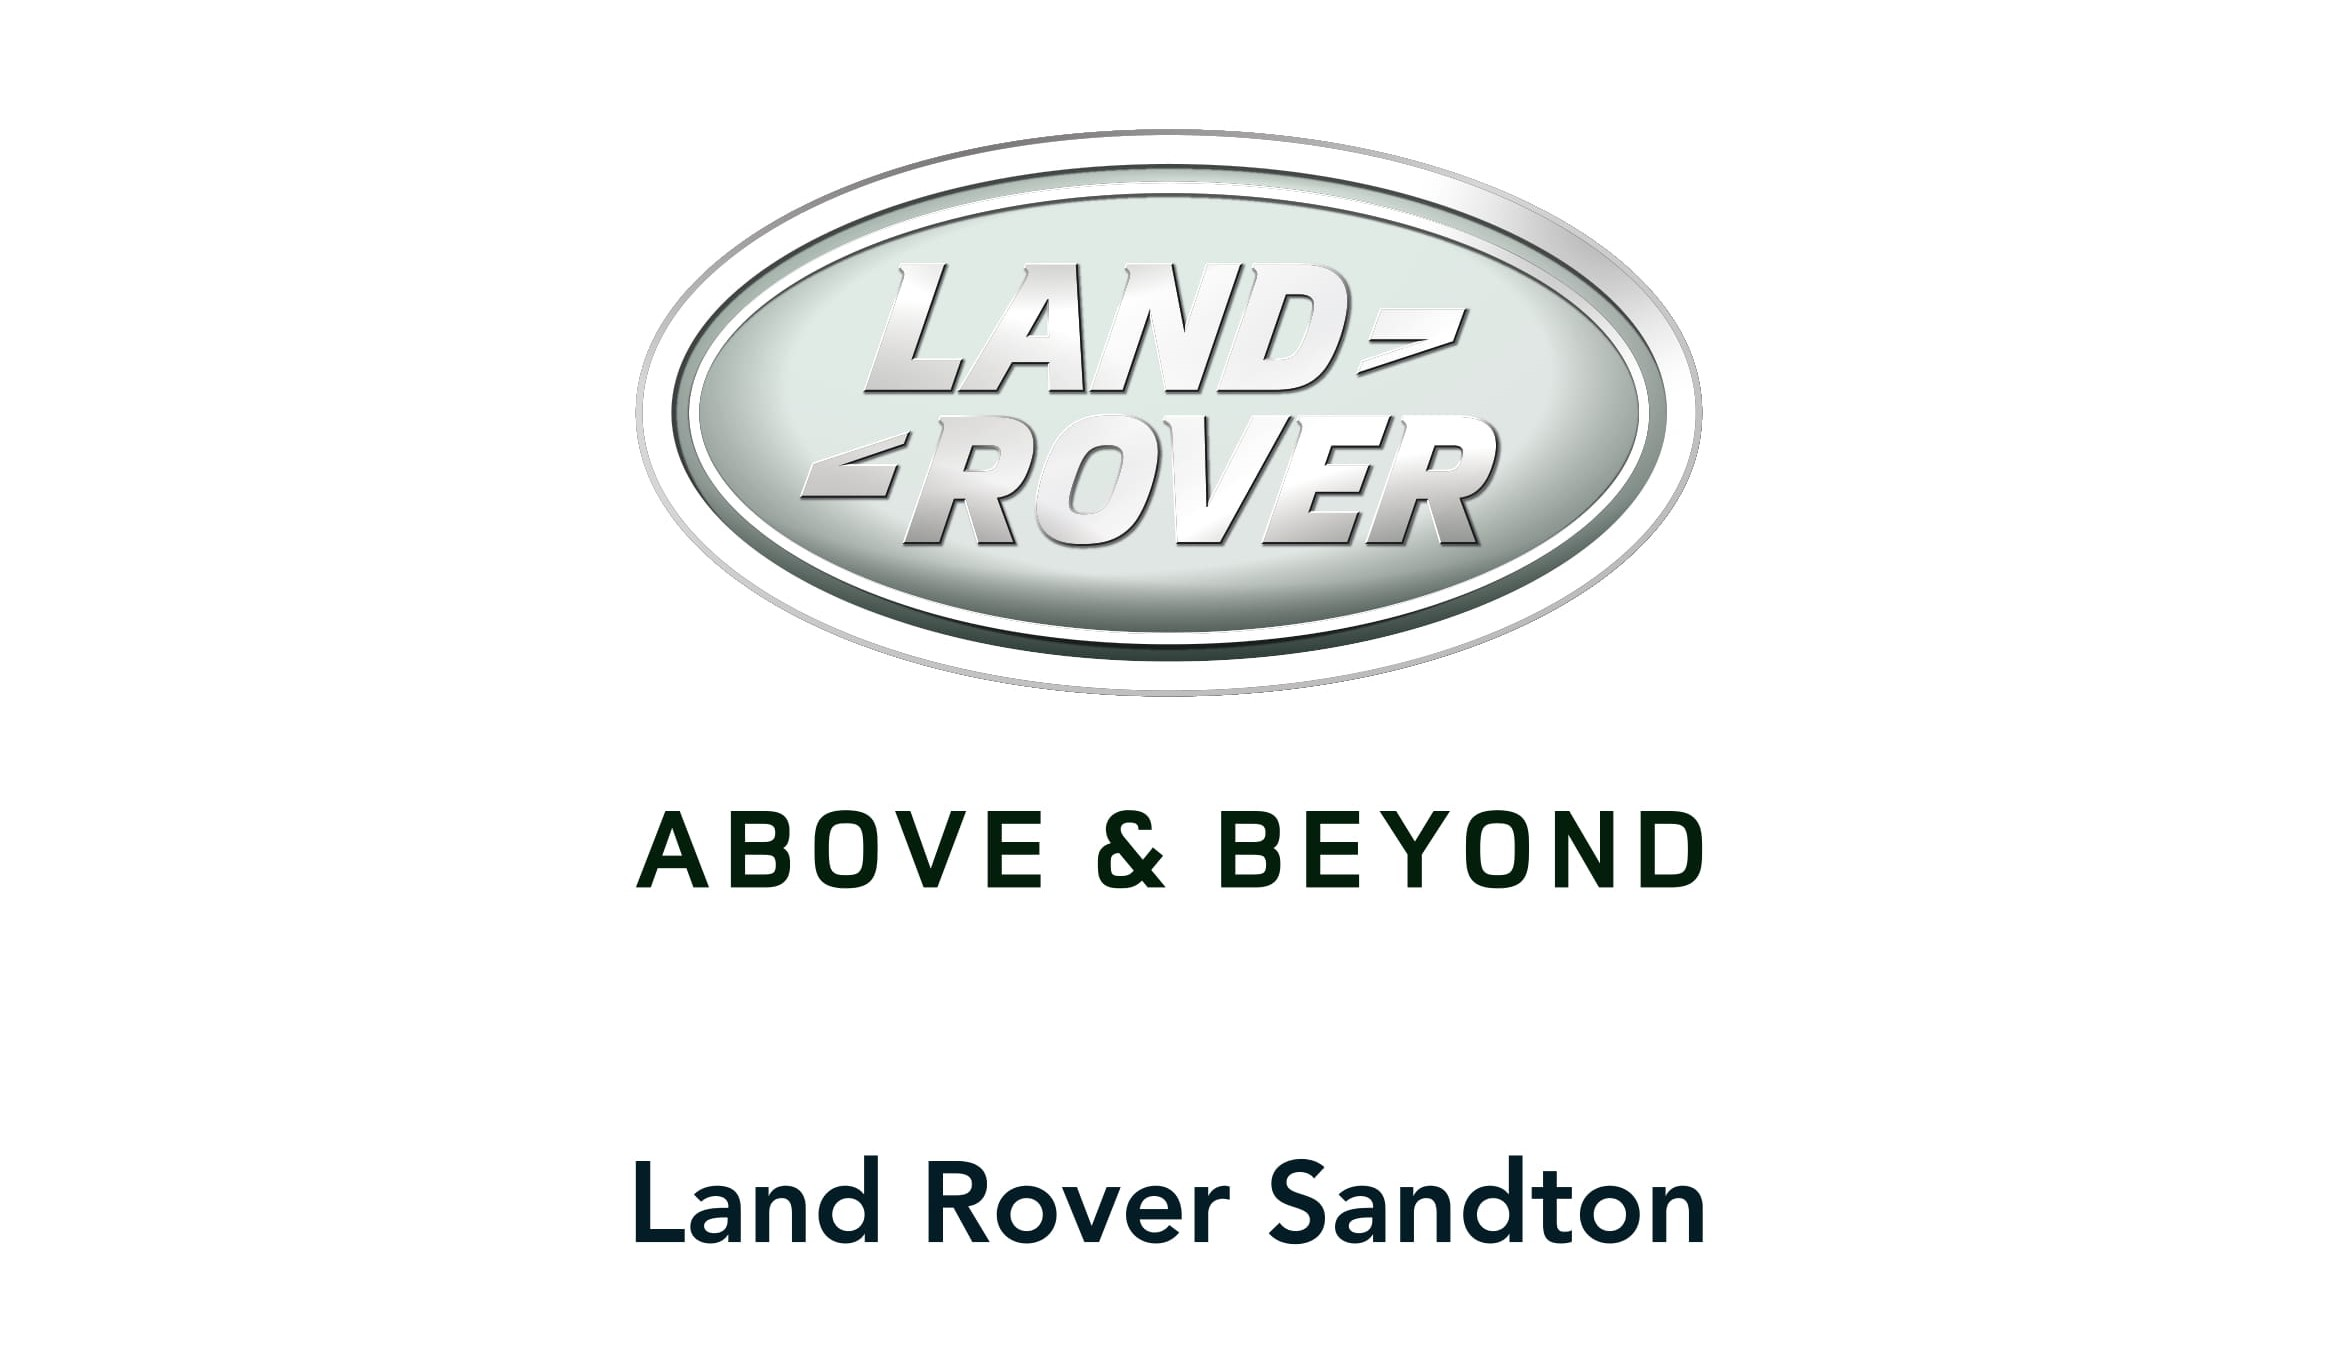 Post Sponsored by Land Rover Sandton